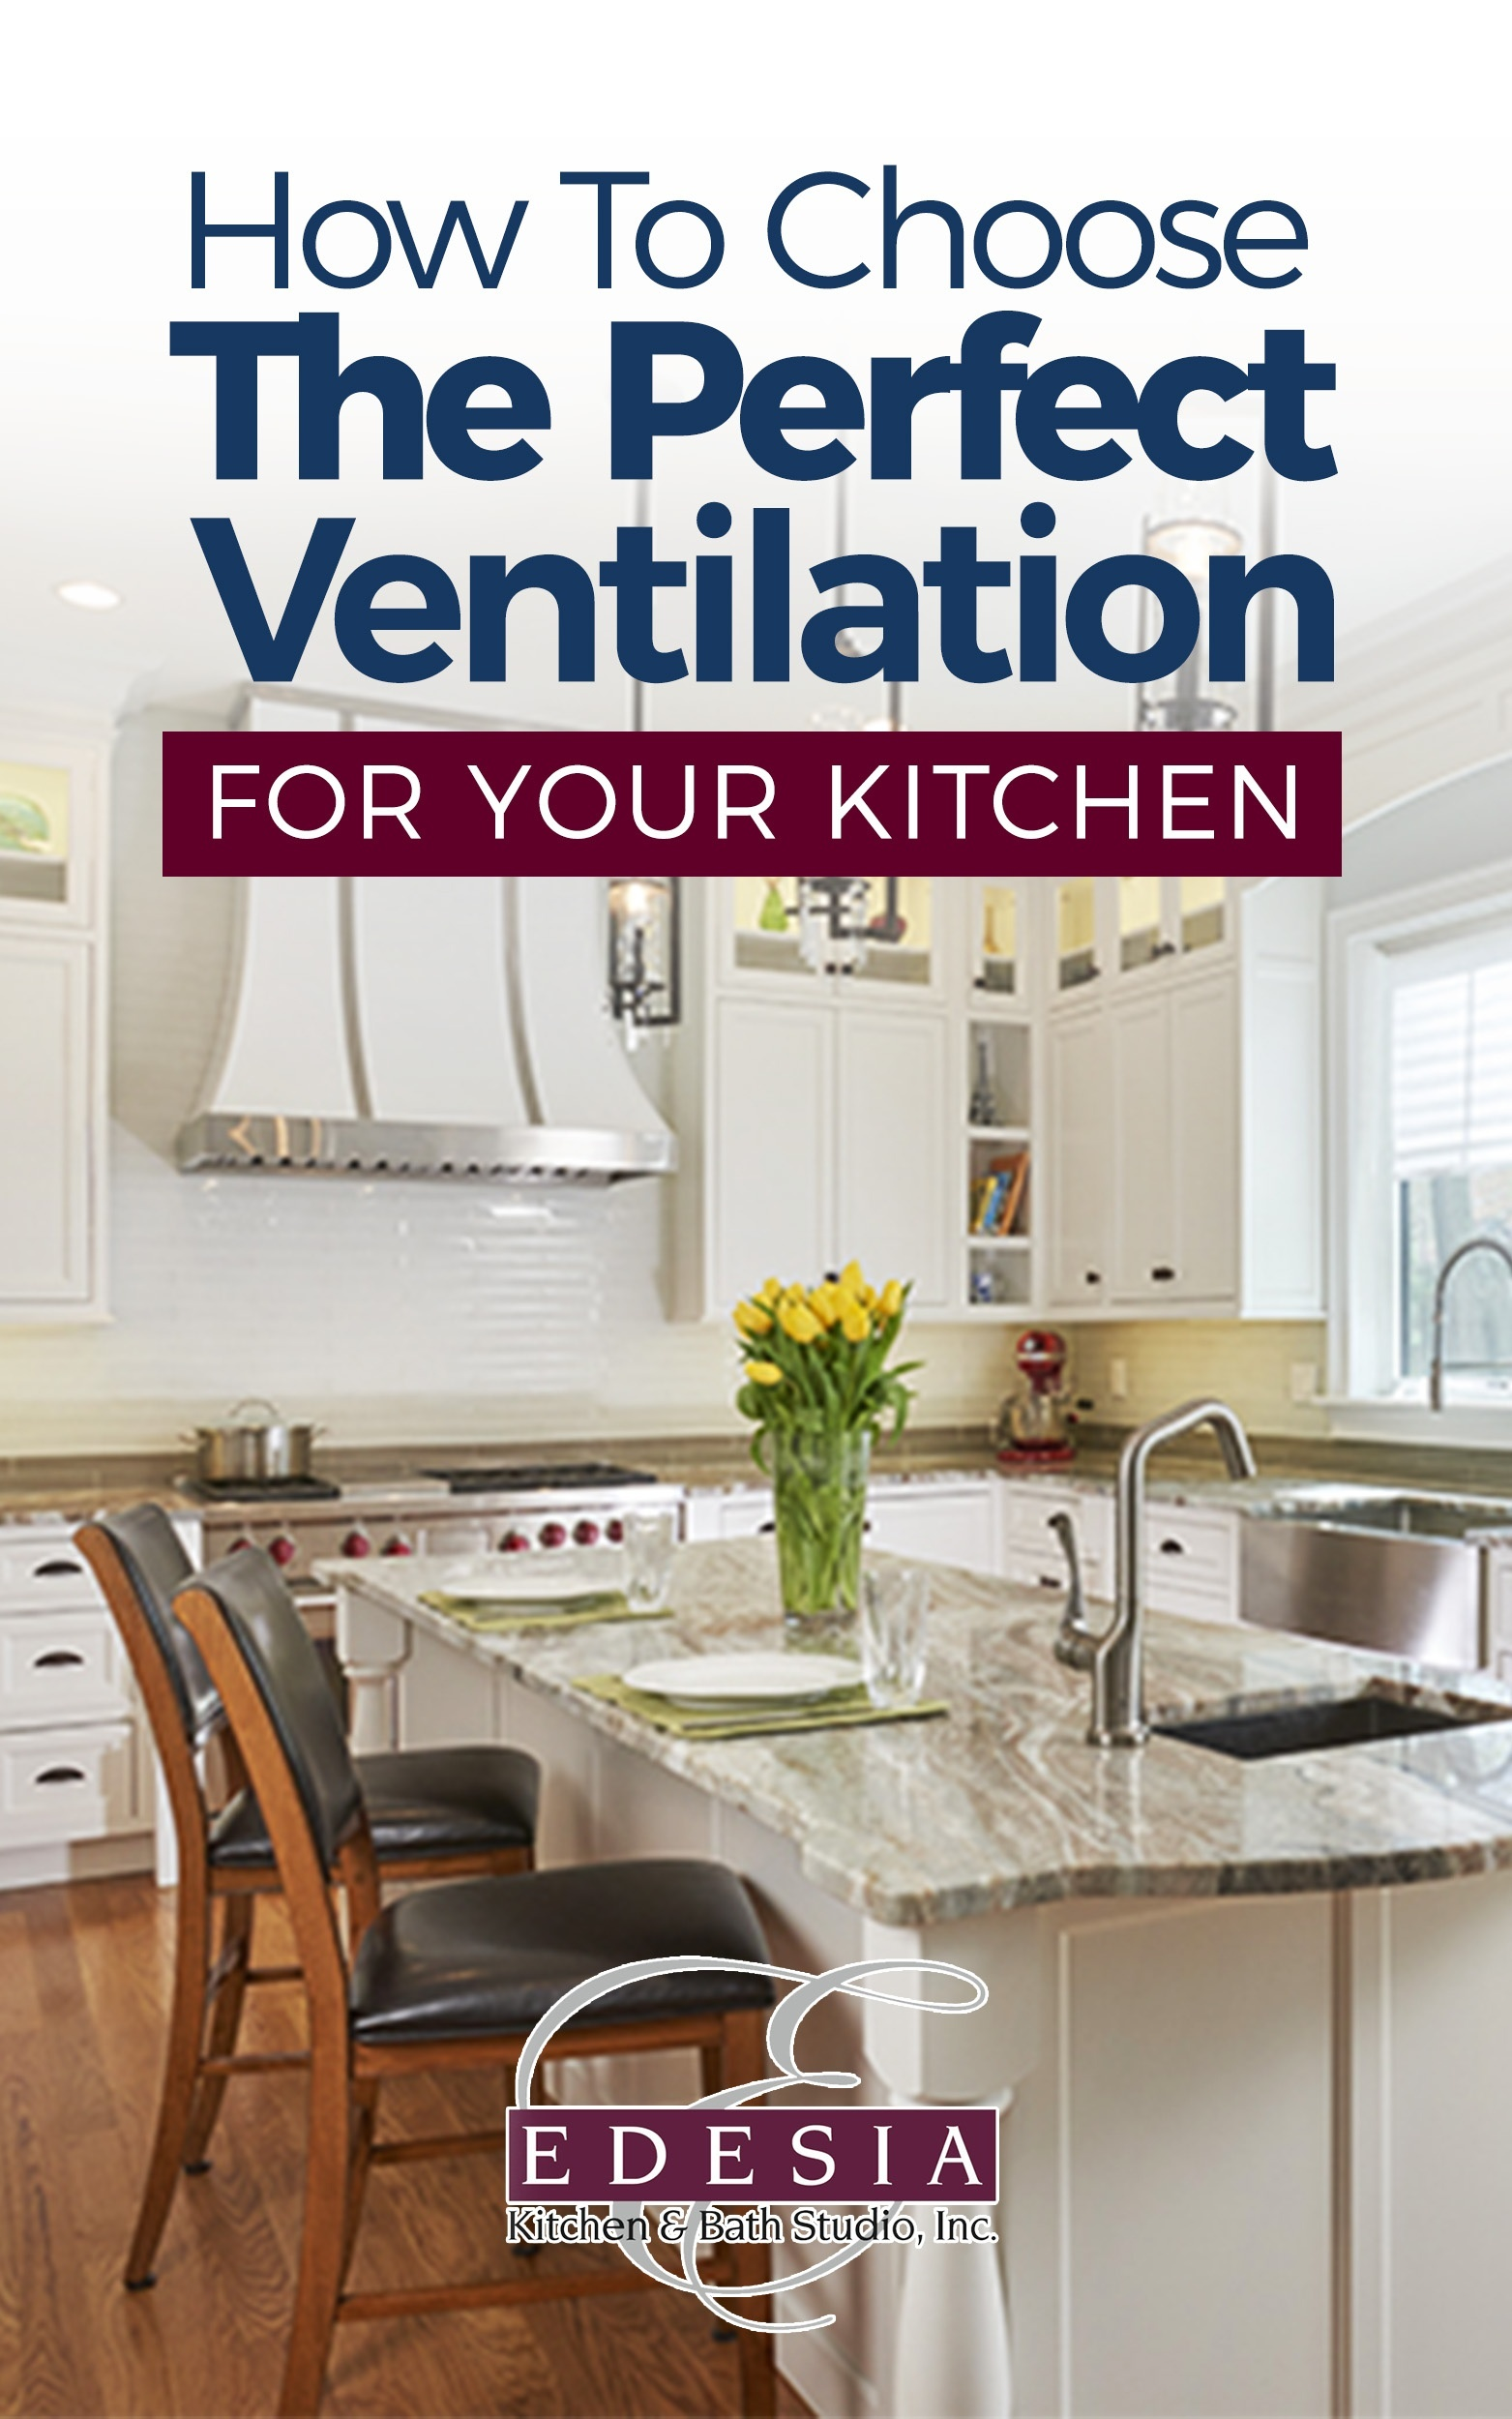 How to Choose the Perfect Ventilation for Your Kitchen